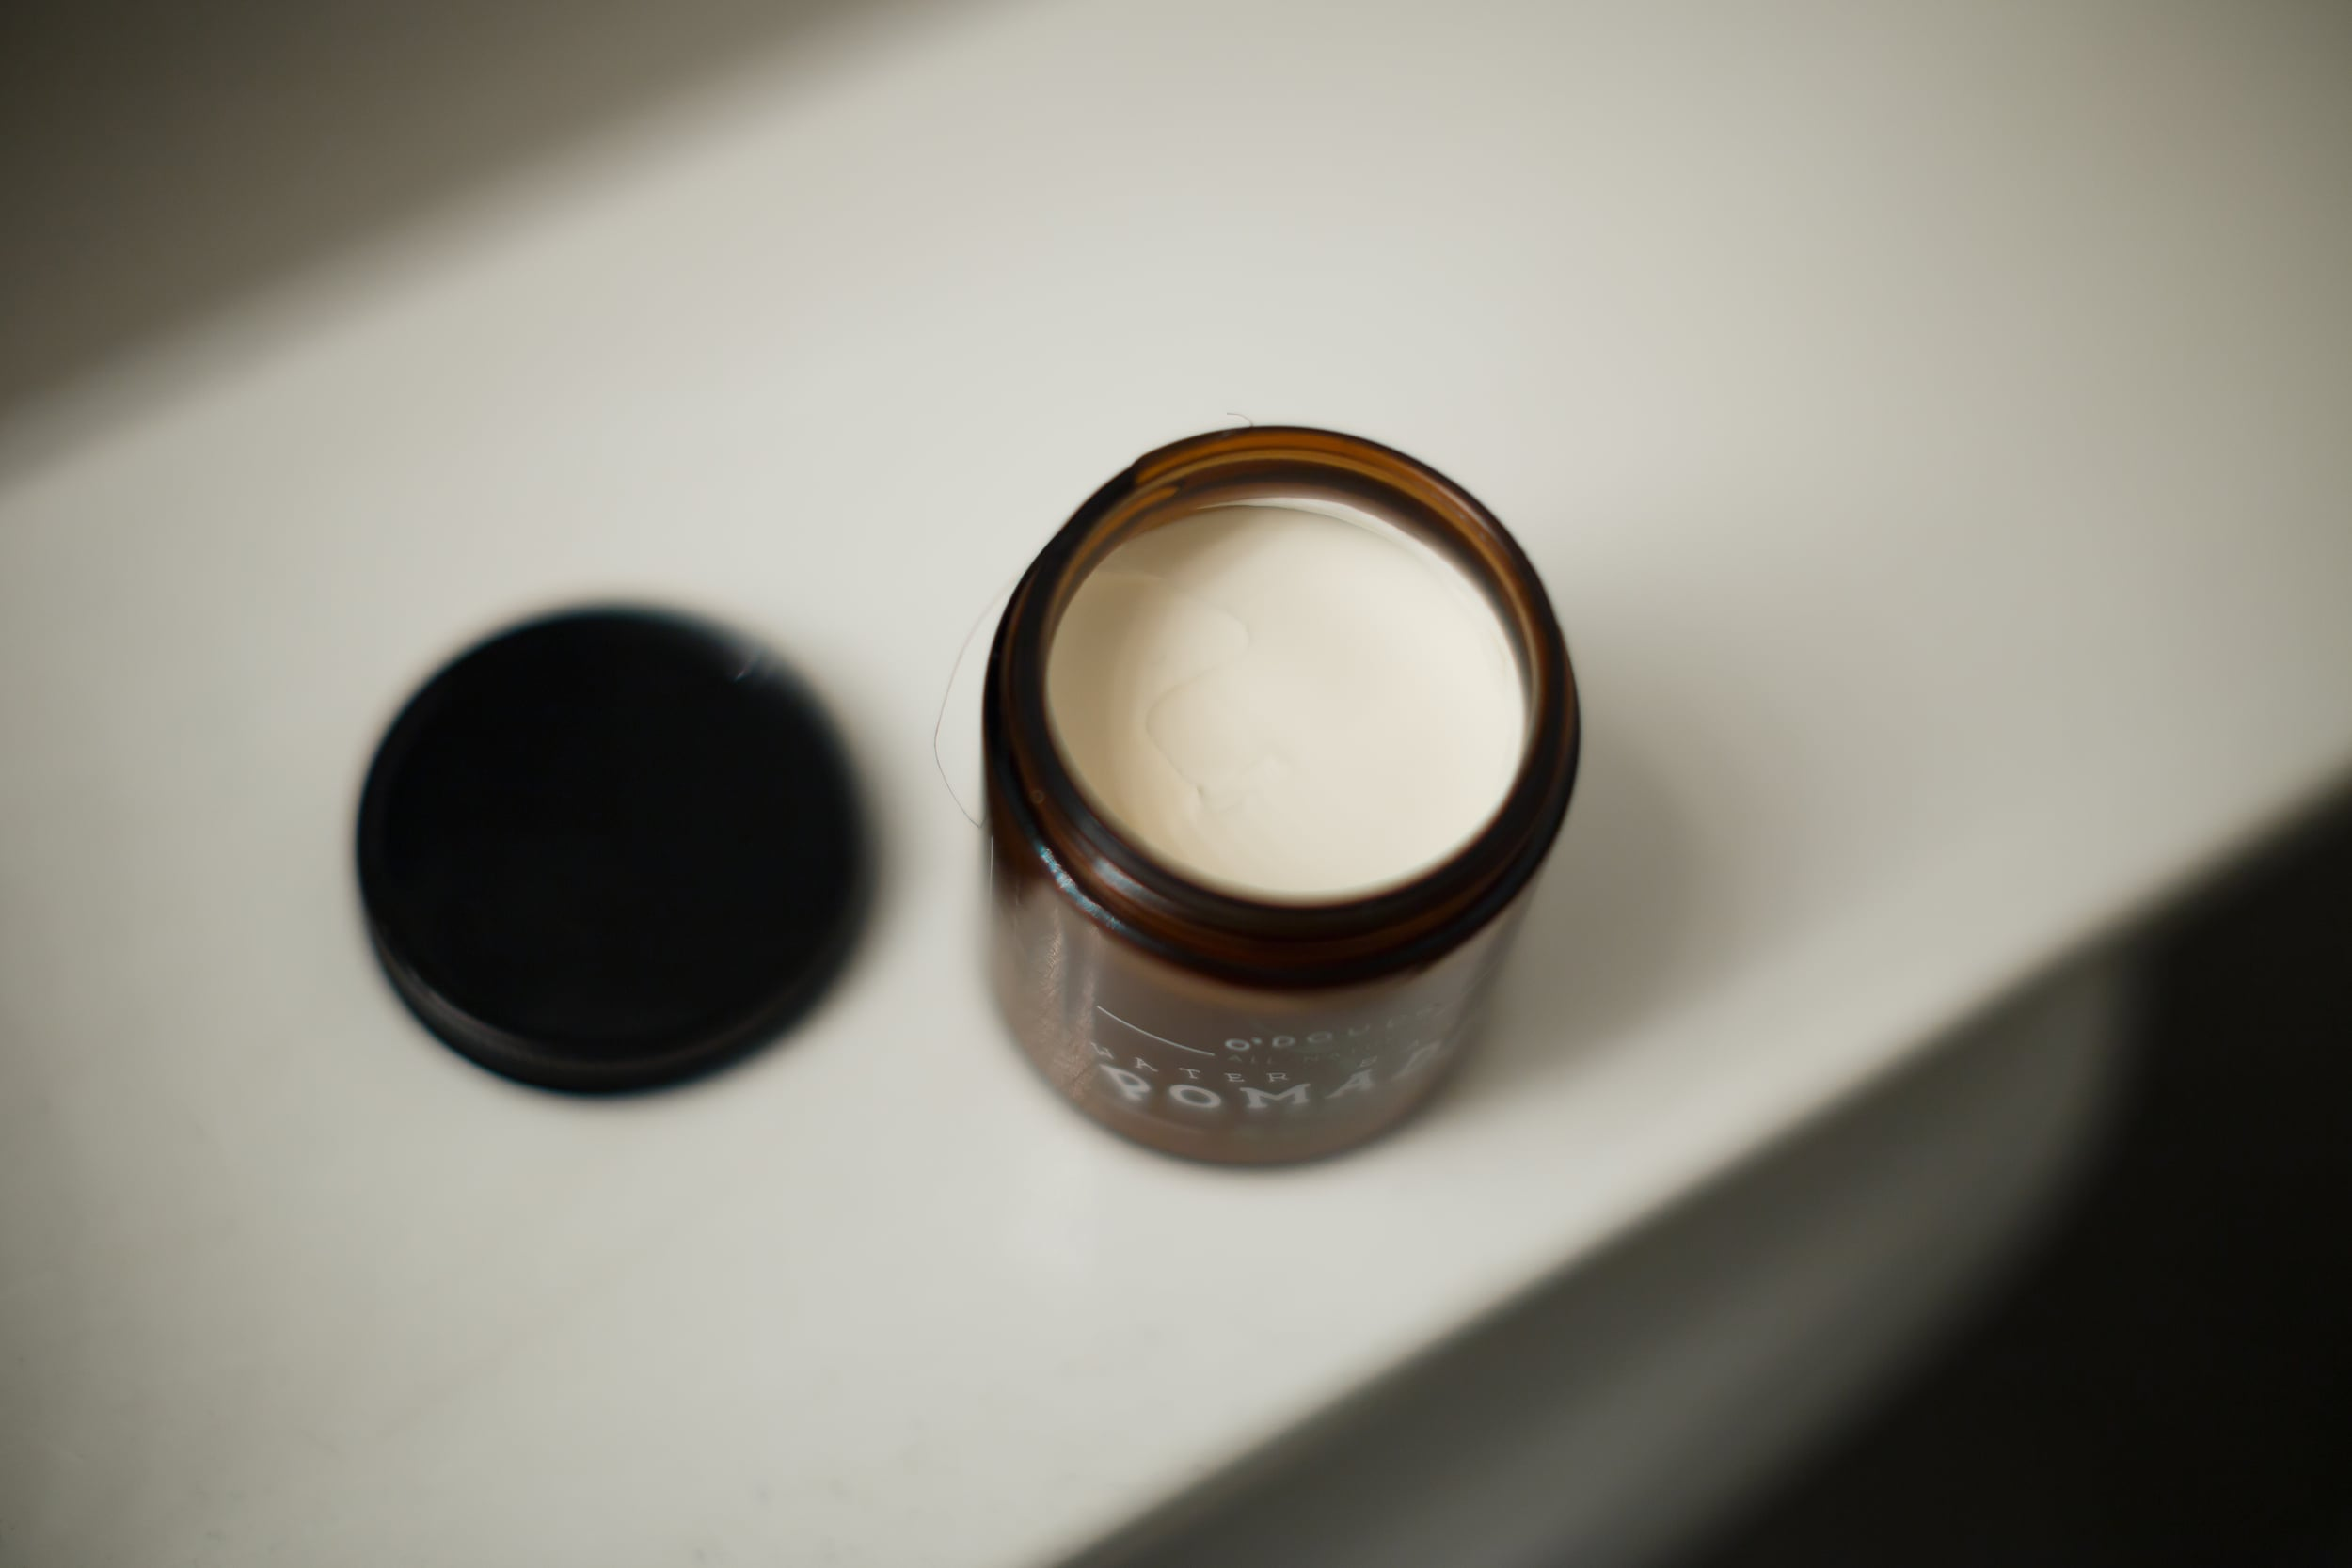 O'Douds Water Based Pomade Review by The Pomp | Pompadour ThePomp Thank You Based Pomp TYBP Unorthodox Non-Drying